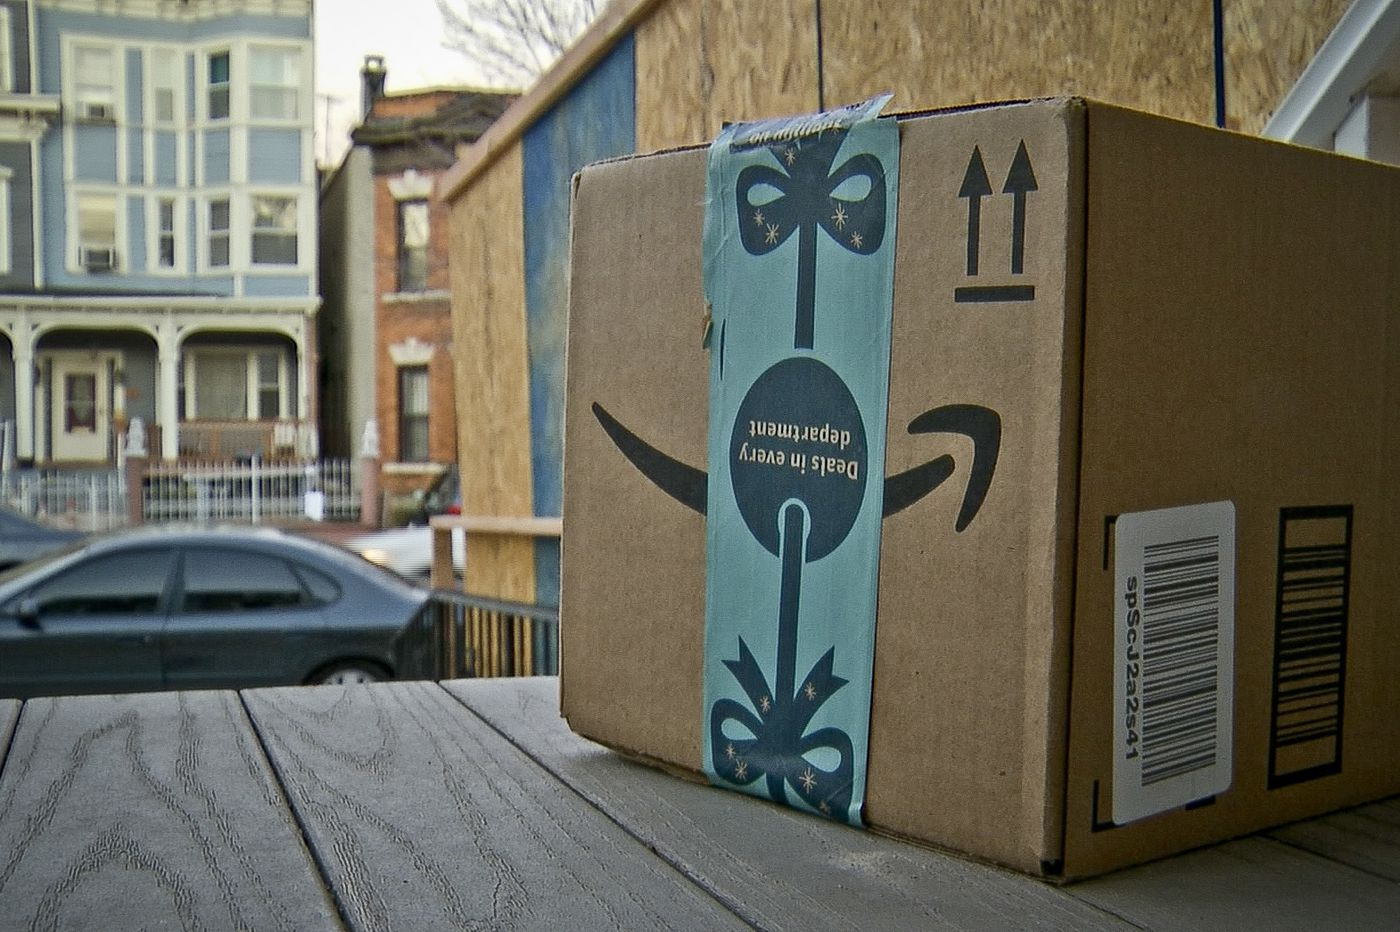 Making porch pirates walk the plank | Opinion